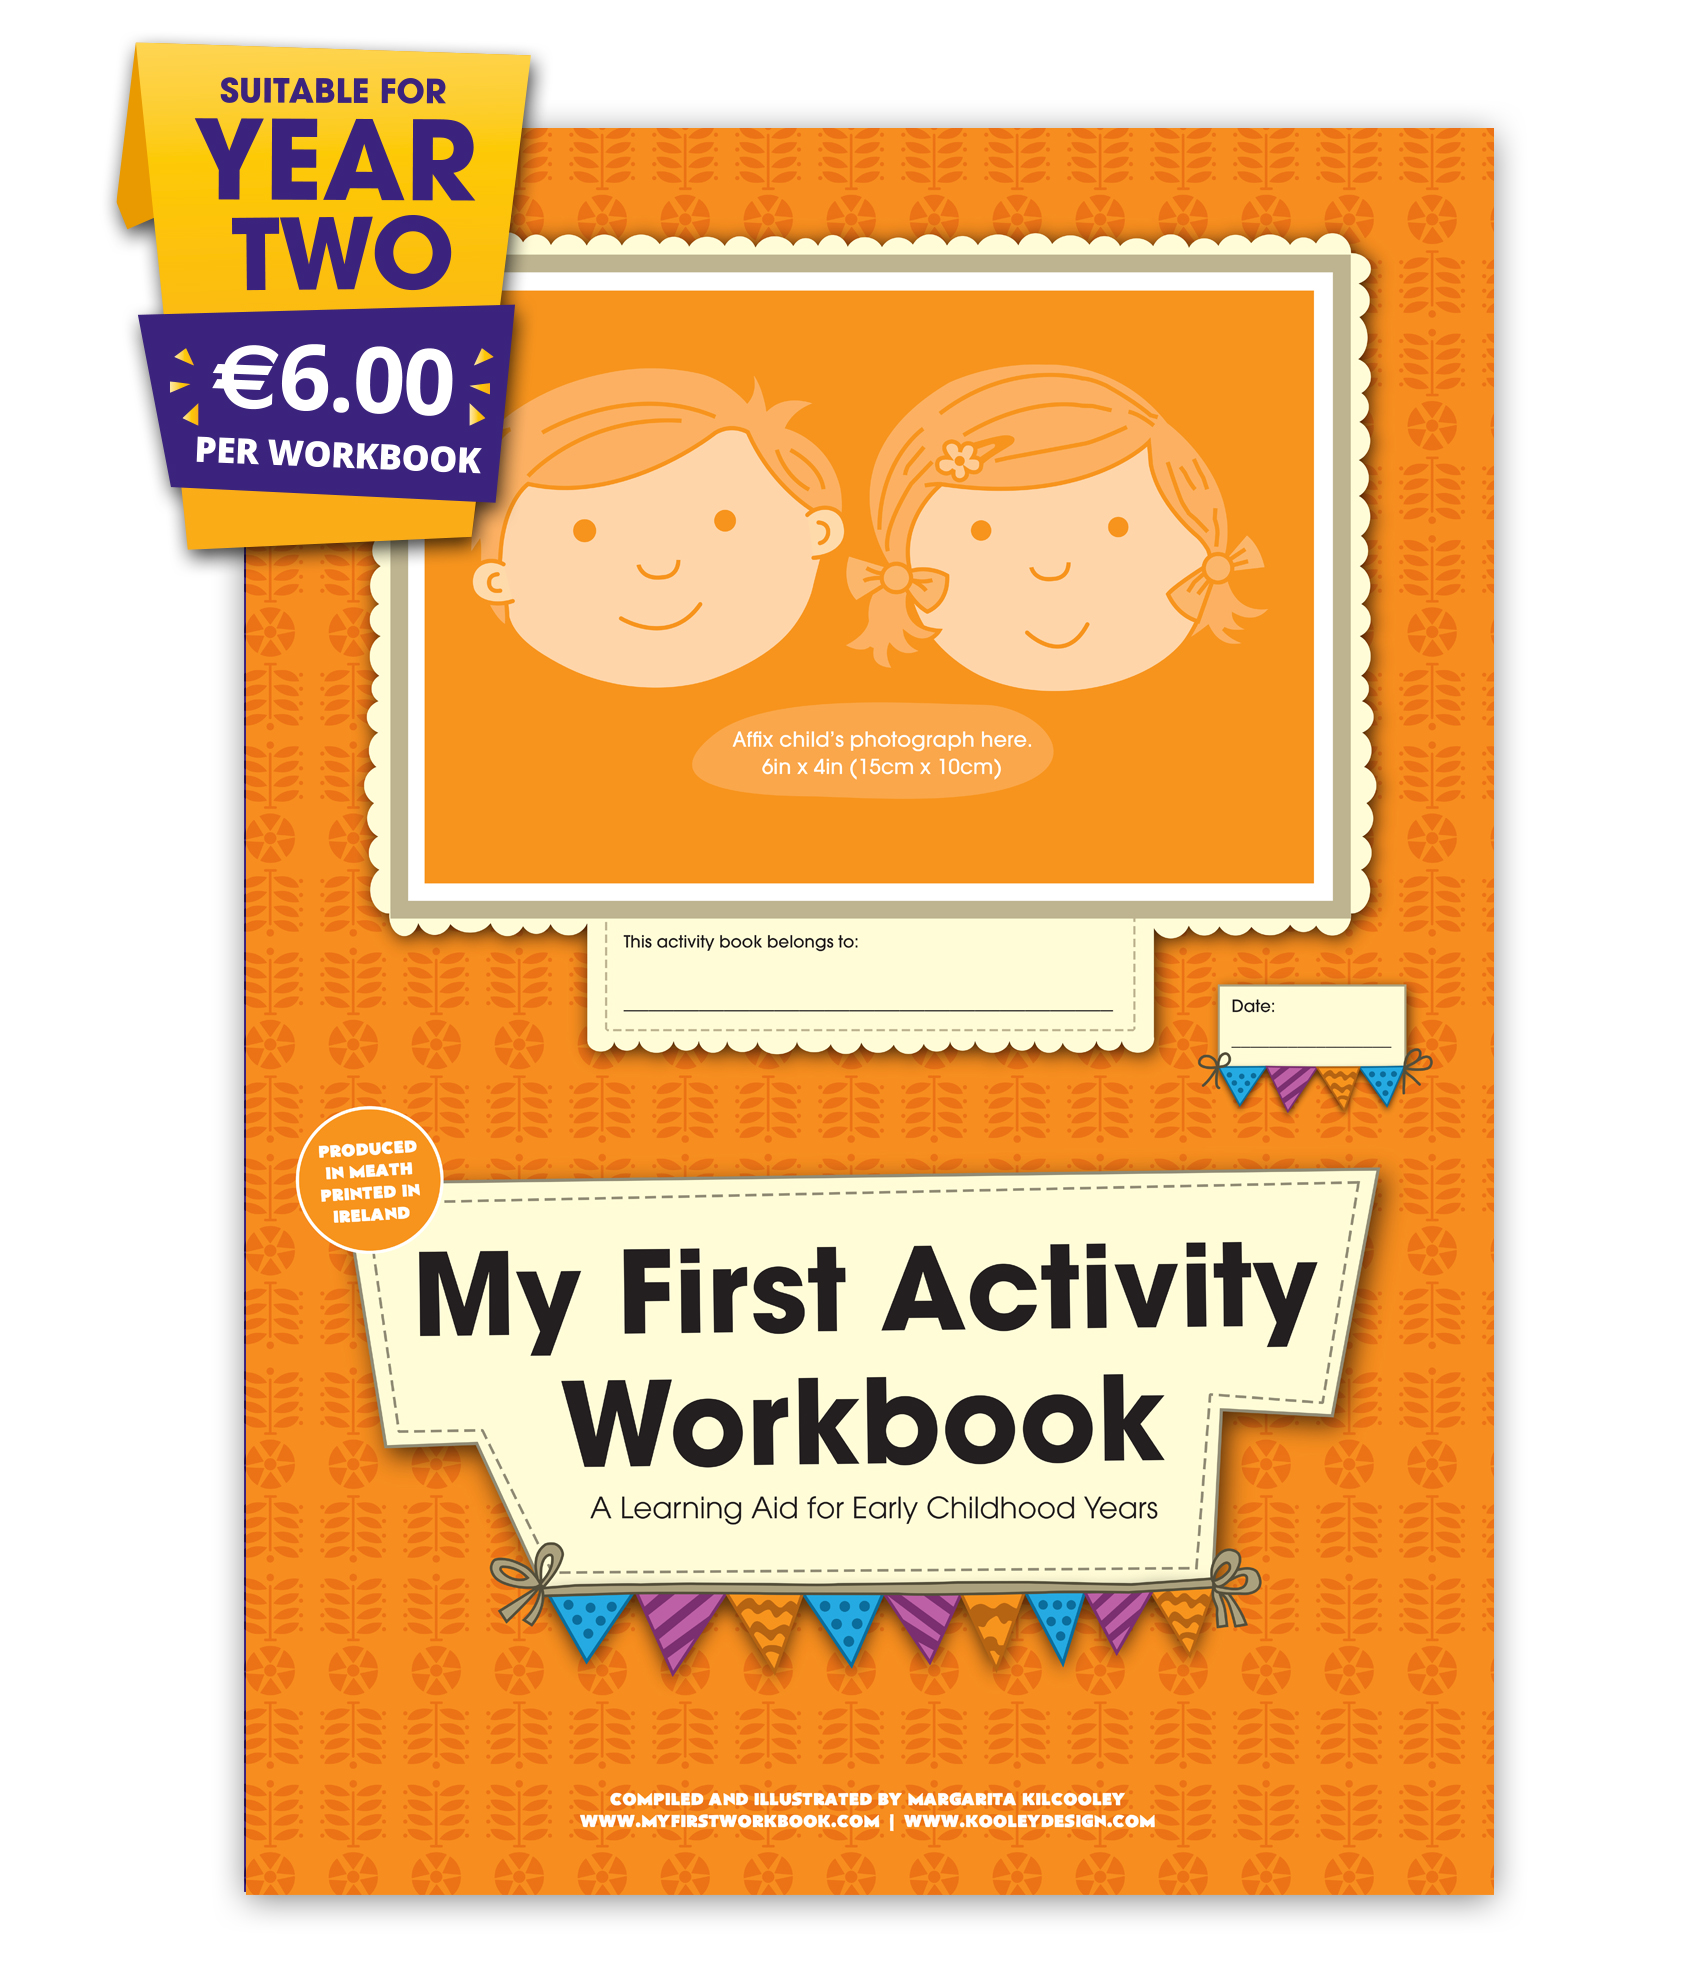 my first activity workbook front cover for preschool & montessori